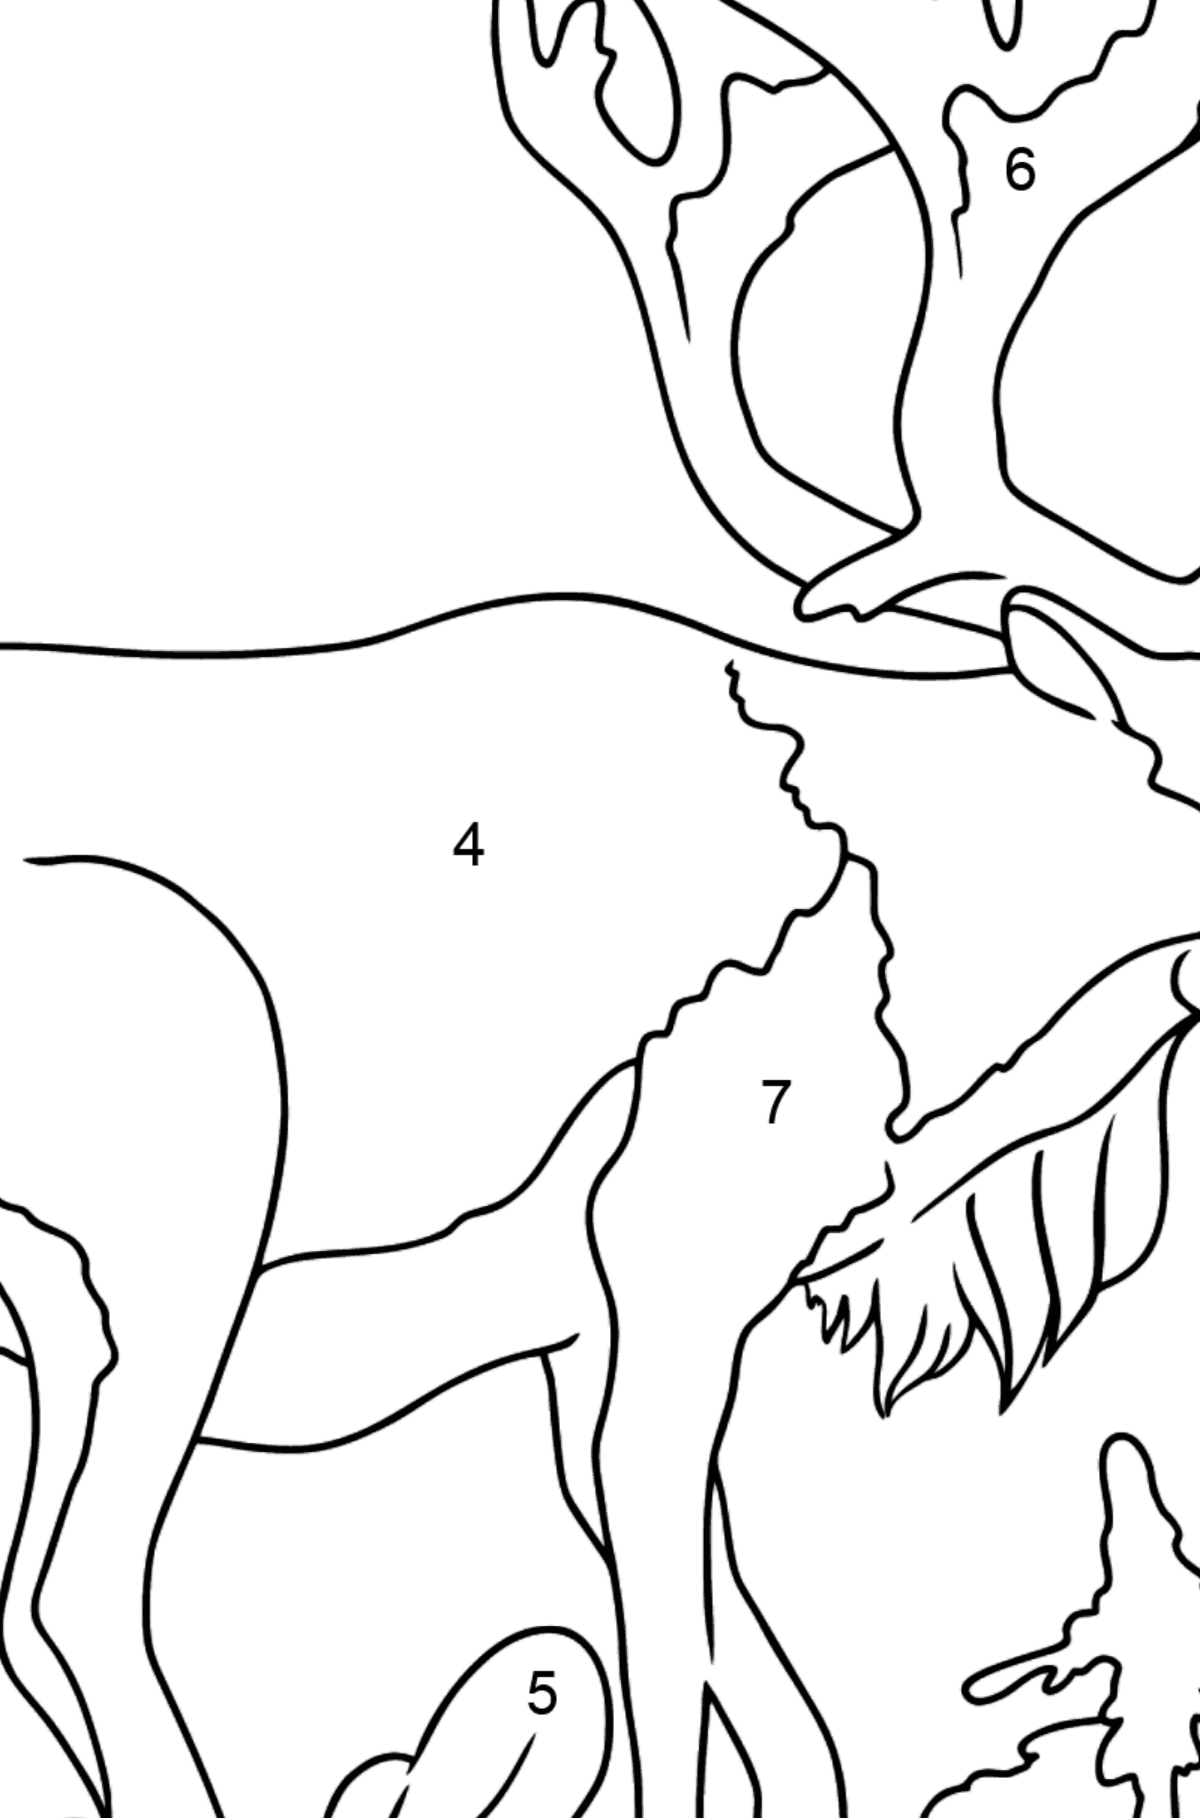 Coloring Page - A Deer with Beautiful Antlers - Coloring by Numbers for Kids